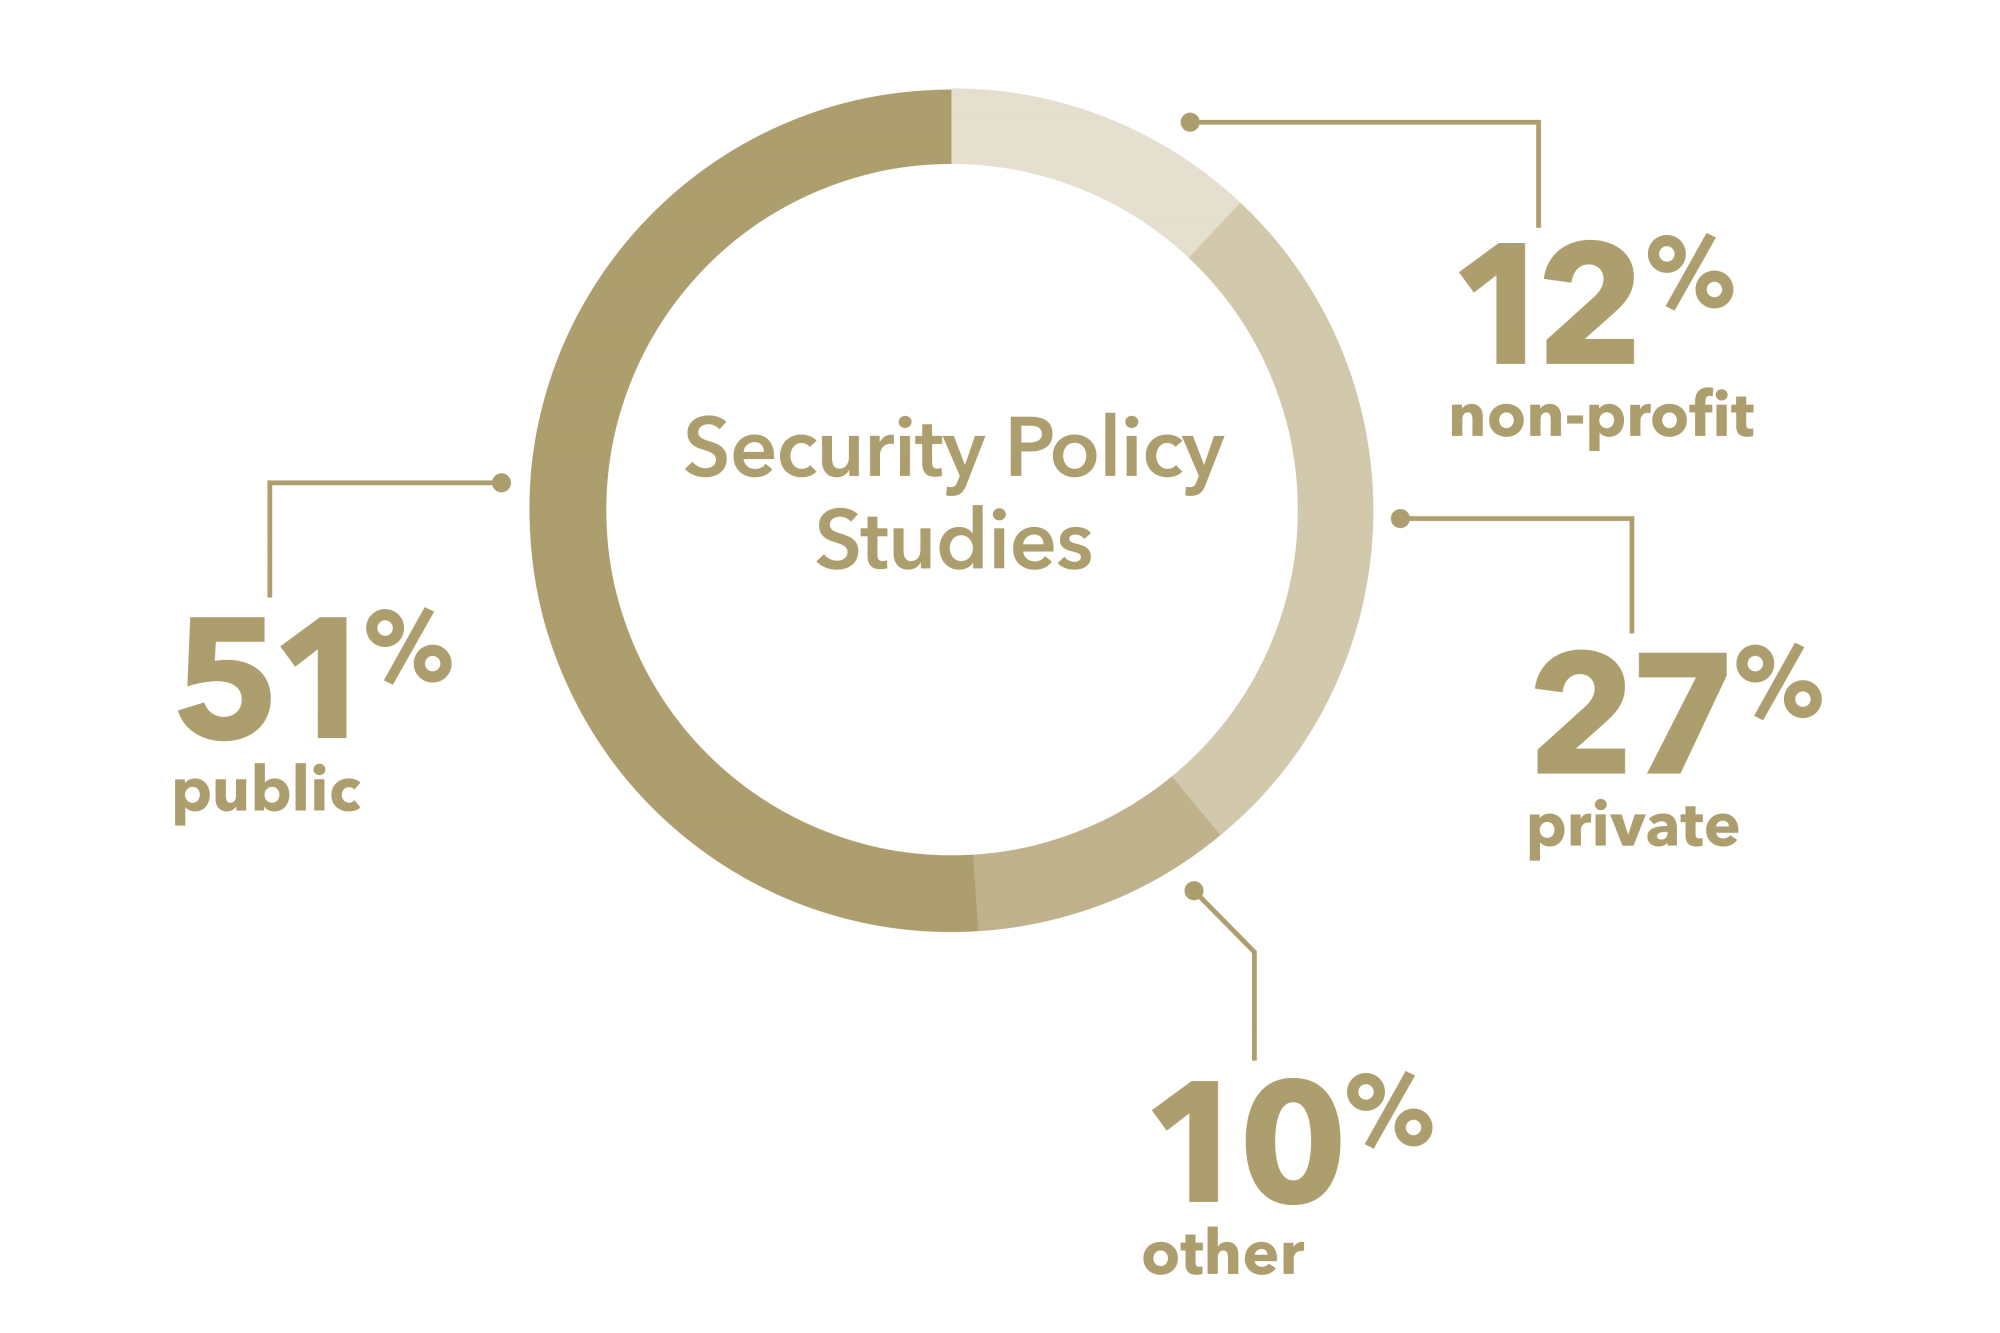 graphic: pie chart, 27% private, 51% public, 12% non-profit, 10% other Security Policy Studies